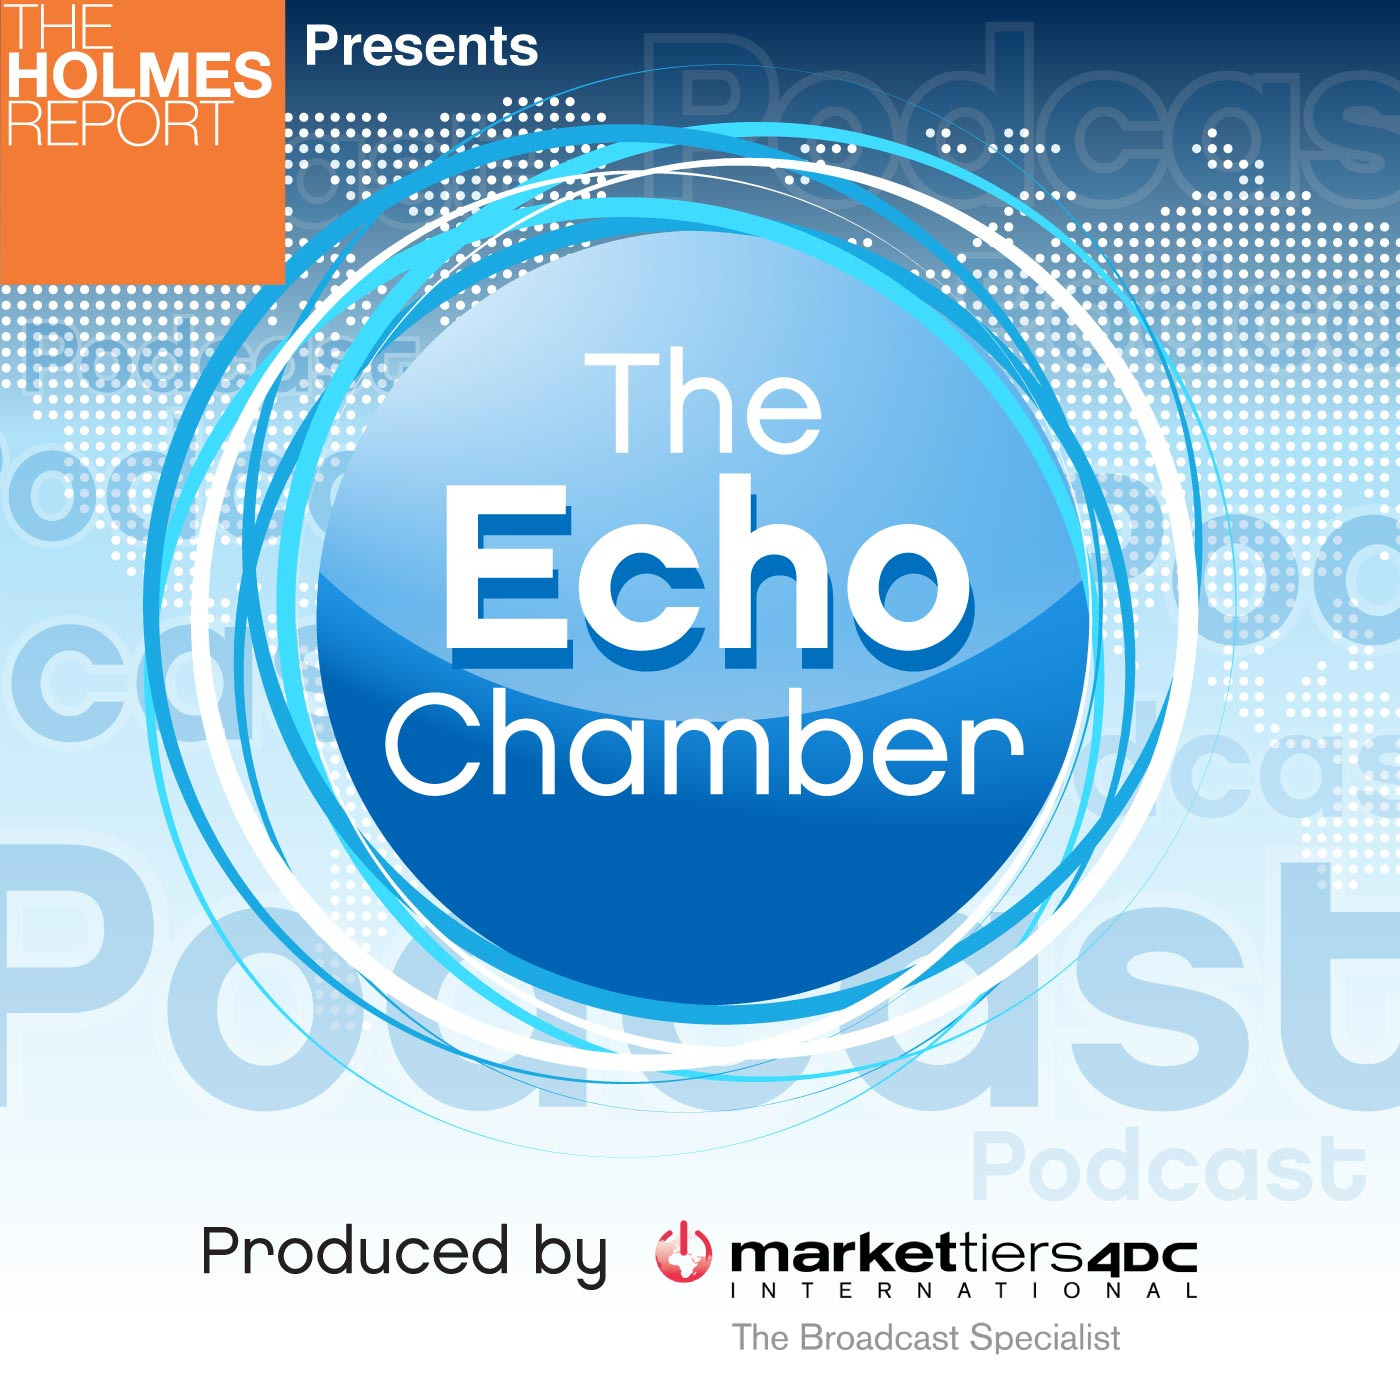 Echo Chamber 2015 square